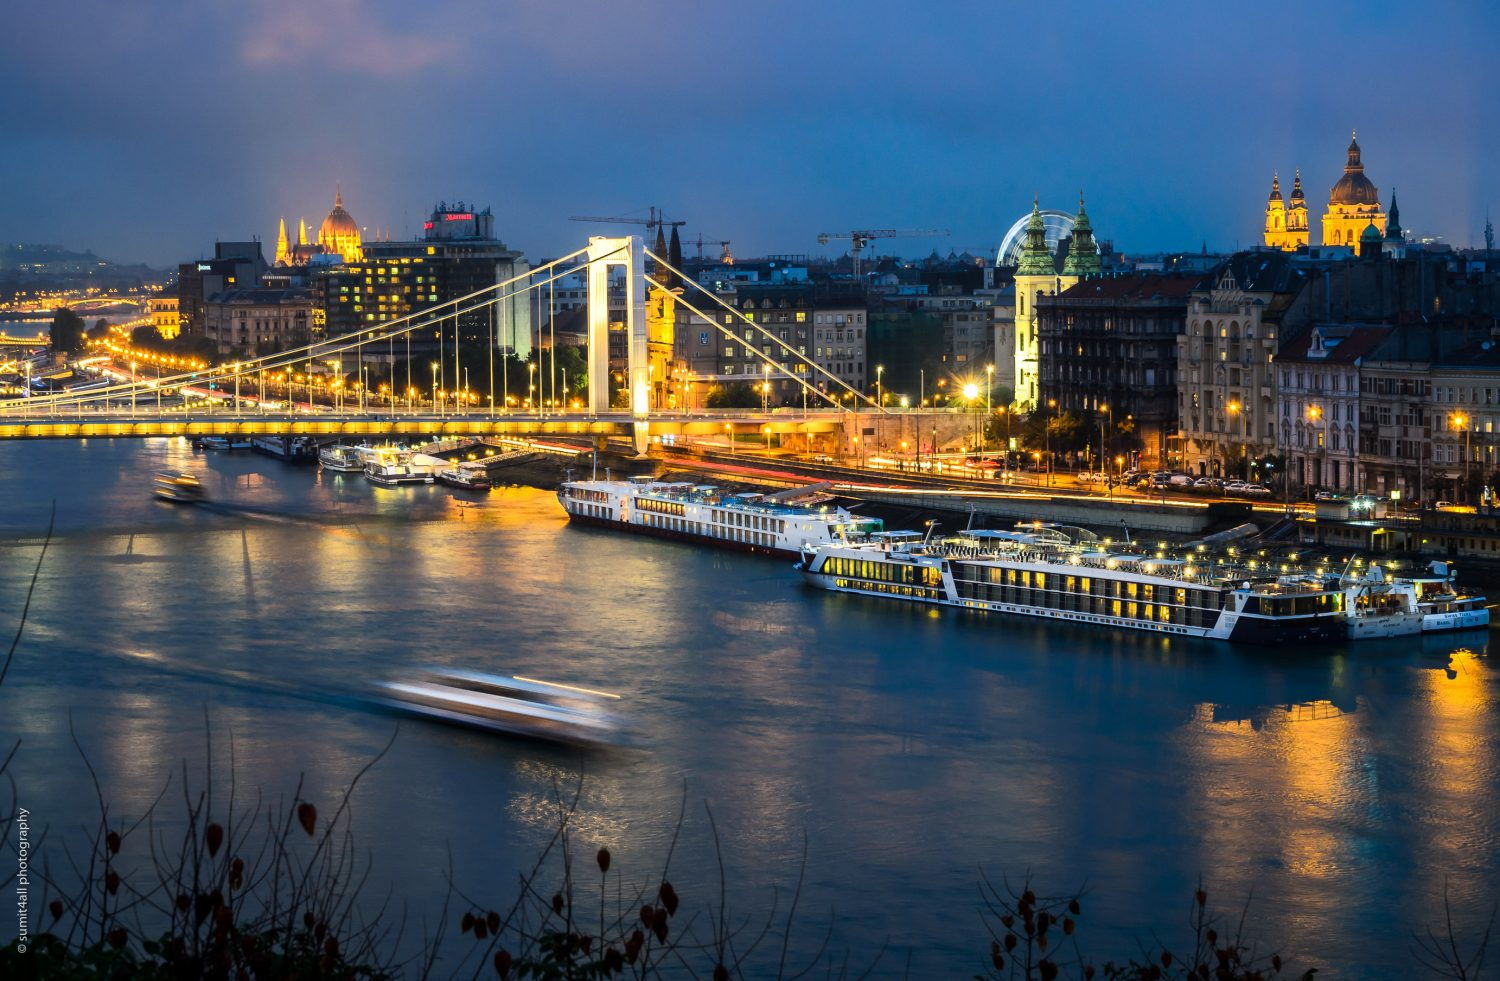 A view of Elisabeth Bridge and the cruises on the Danube river in Budapest.